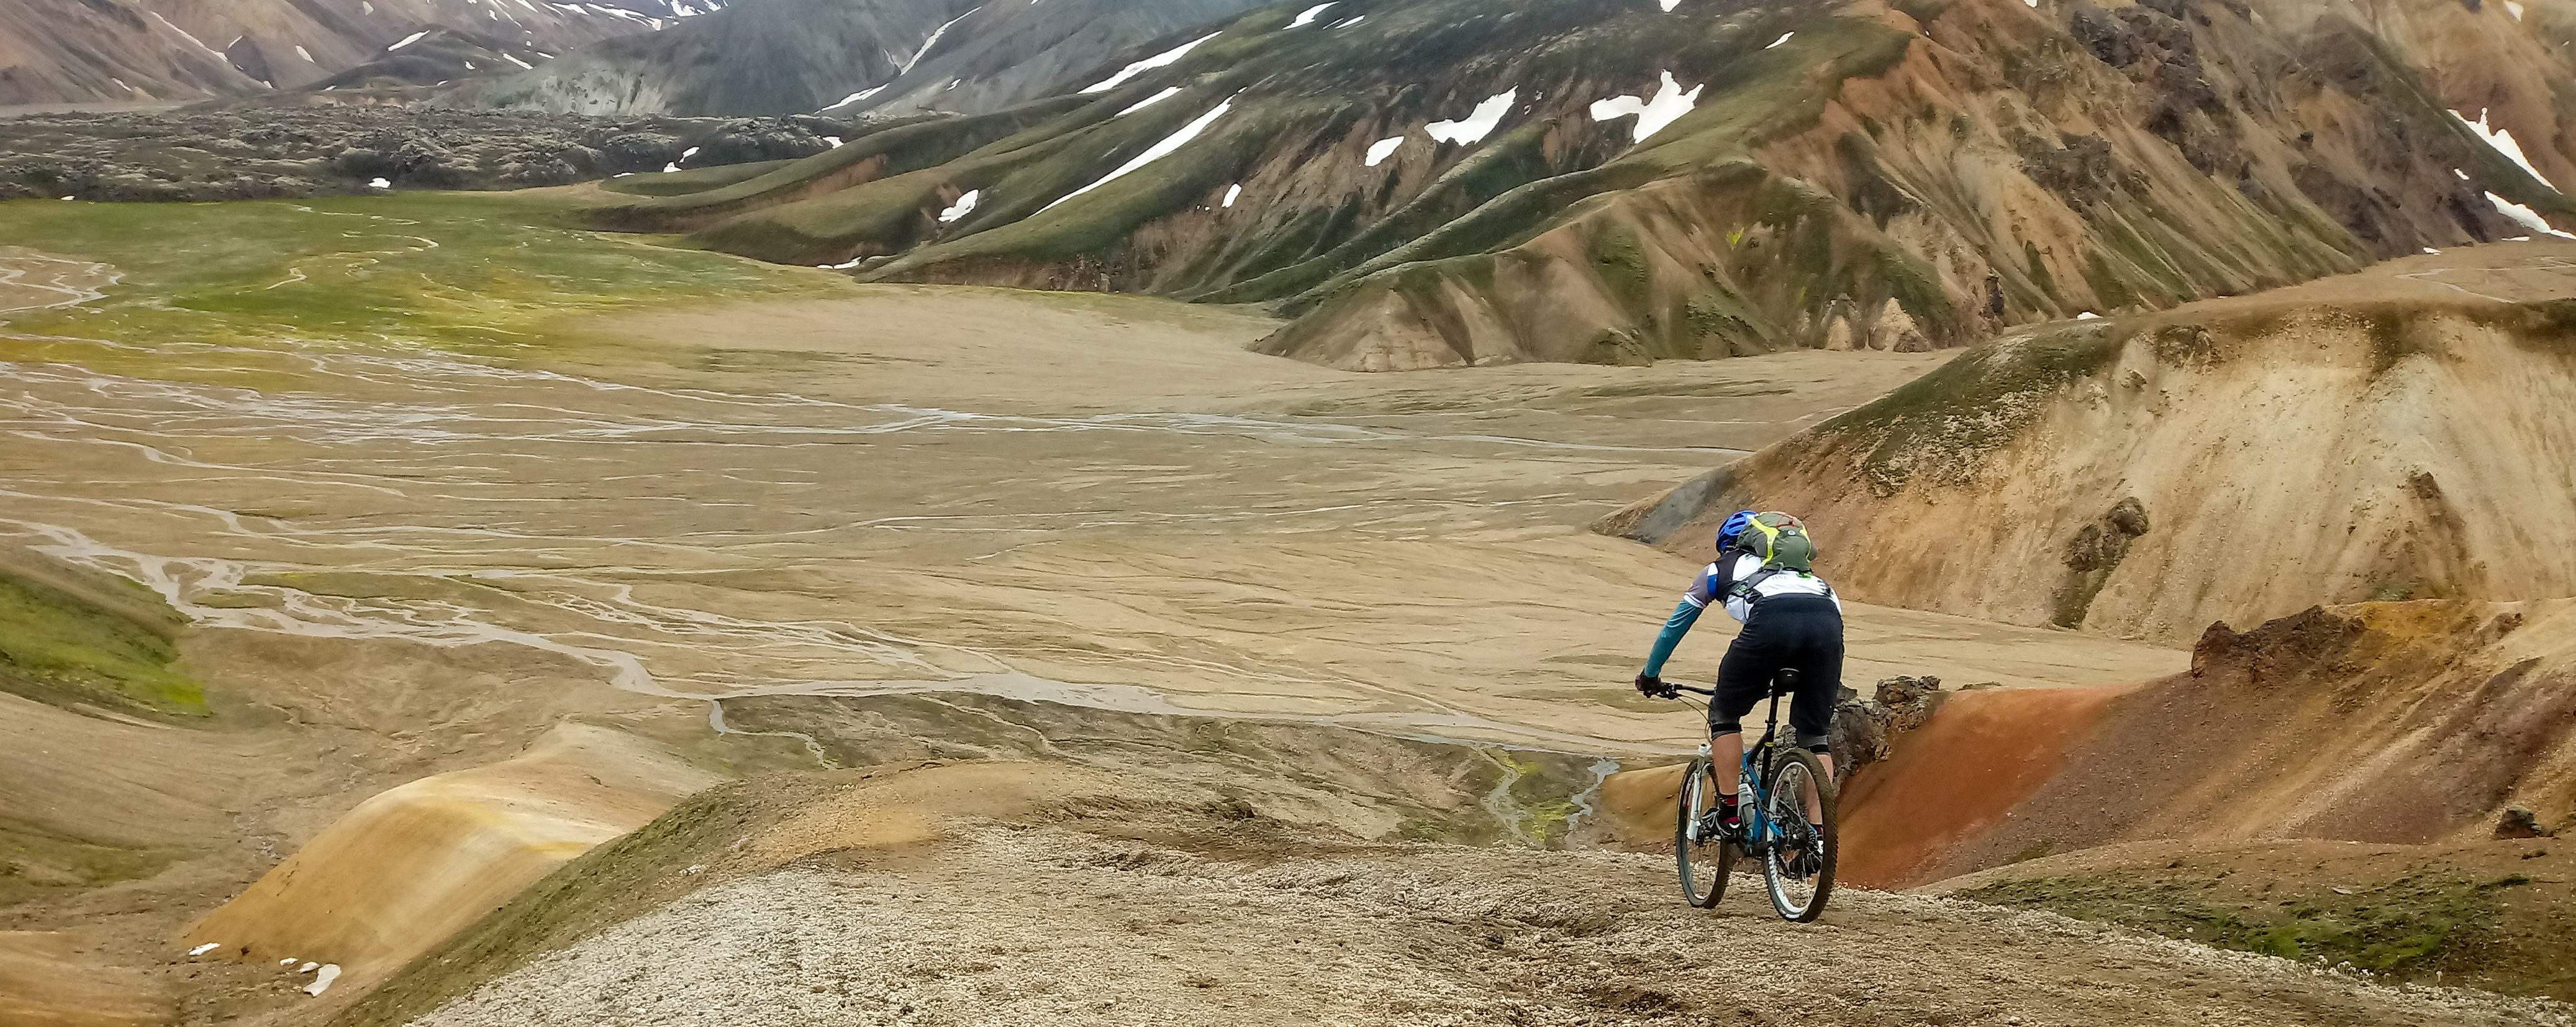 Single track madness Landmannalaugar MTB